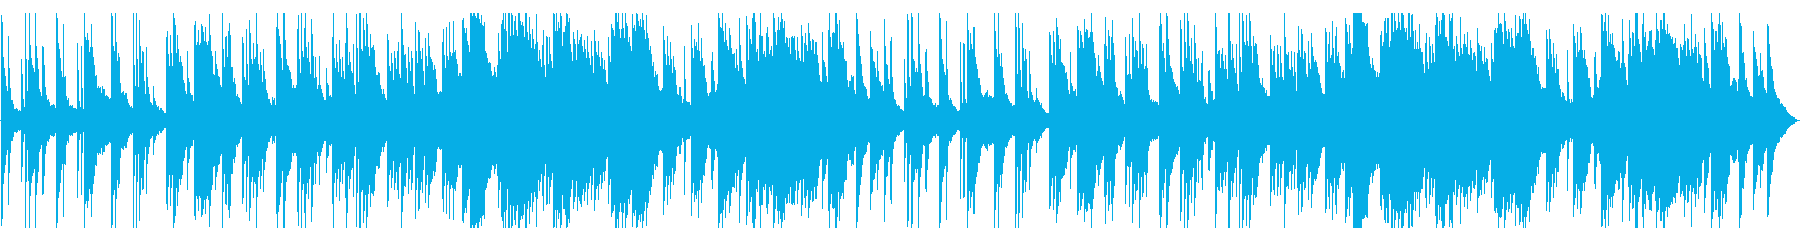 A warm and painful piano ballad's reproduced waveform